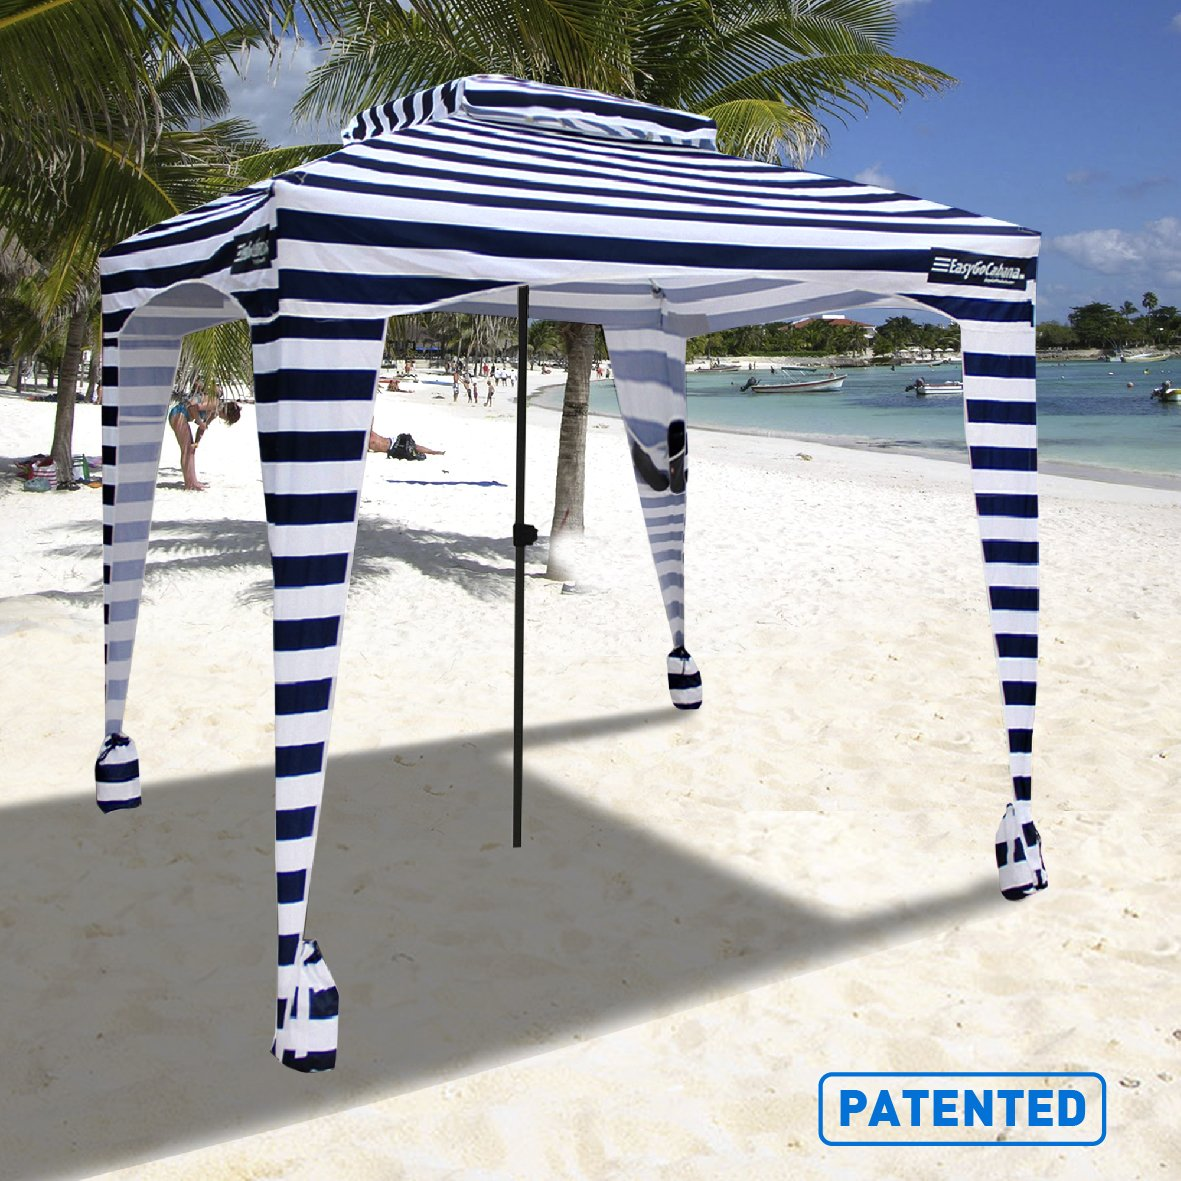 EasyGo Cabana - 6' X 6' - Beach & Sports Cabana Keeps You Cool and Comfortable. Easy Set-up and Take Down. Large Shade Area. More Elegant & Classier Than Beach Umbrella (Blue White Striped) by EasyGoProducts